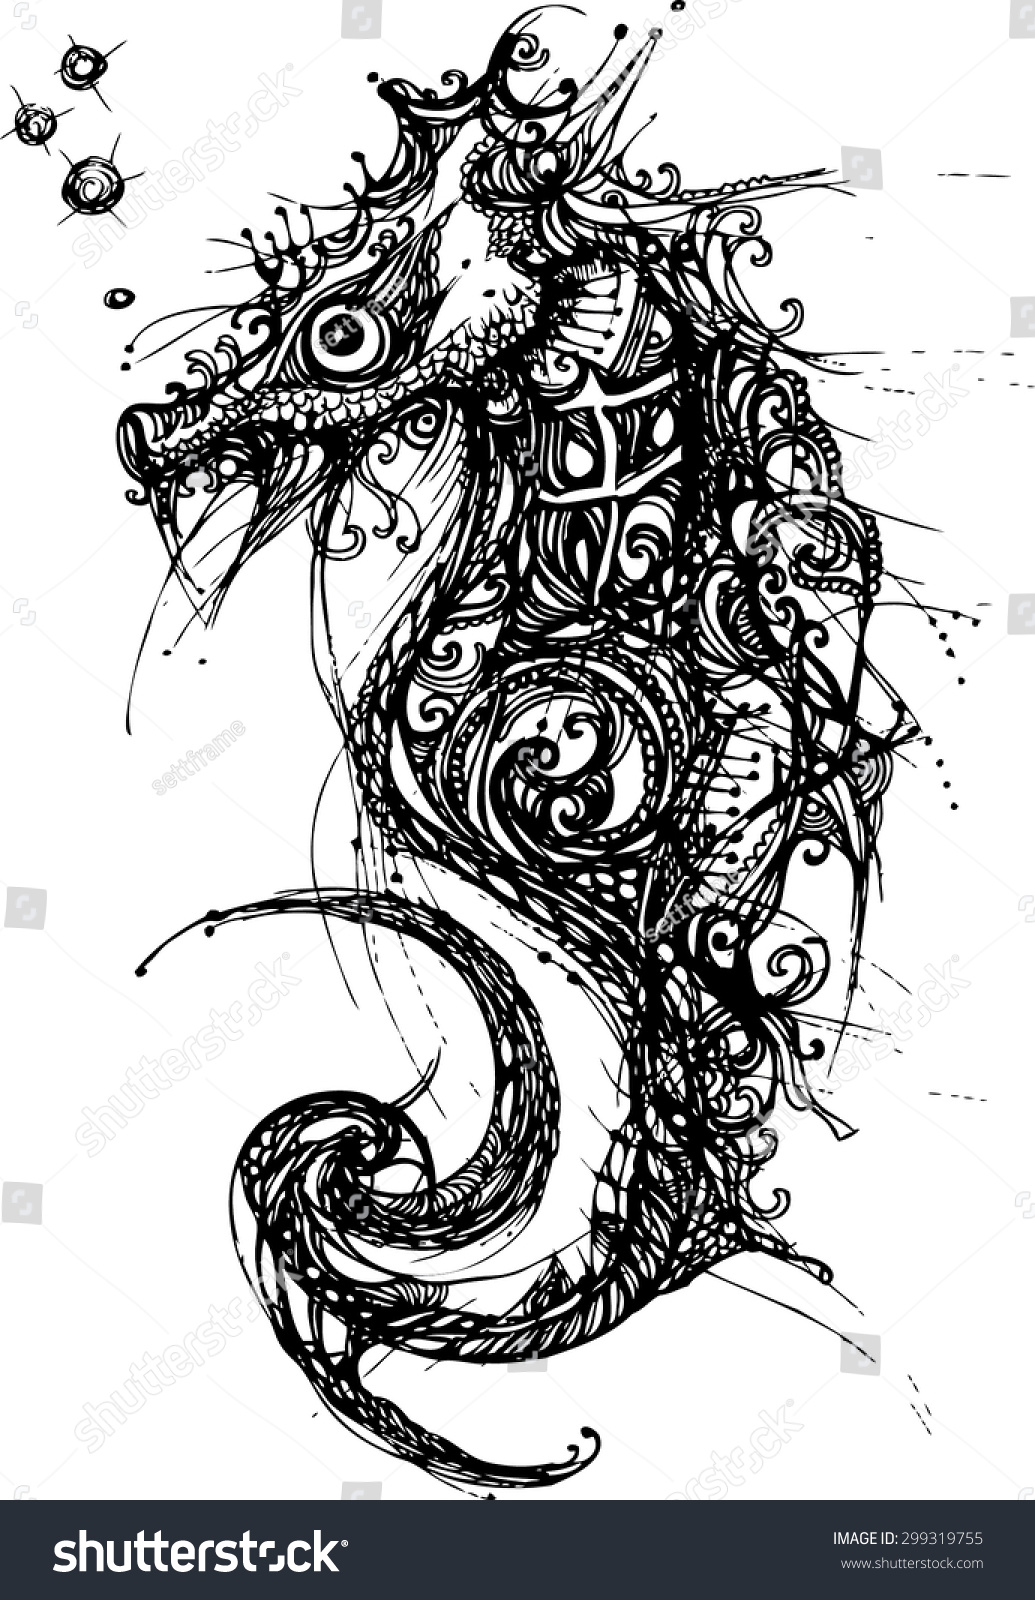 Line Art Media Design : Zentangle design sea horse hand draw stock vector